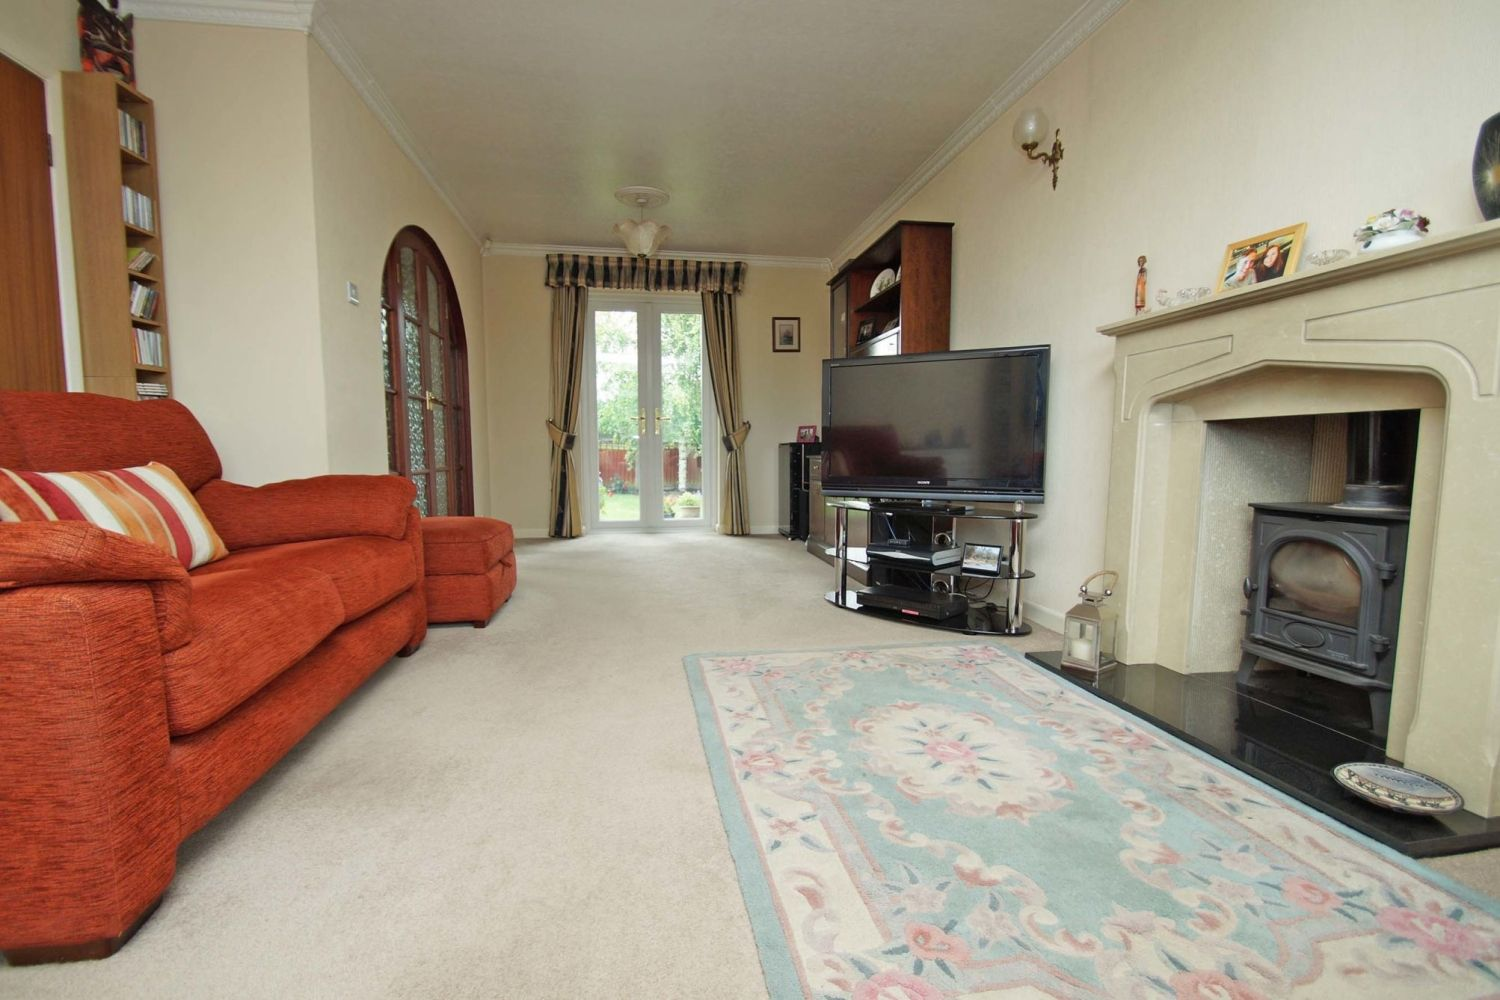 4 bed detached for sale in St. Richards Close, Wychbold  - Property Image 4